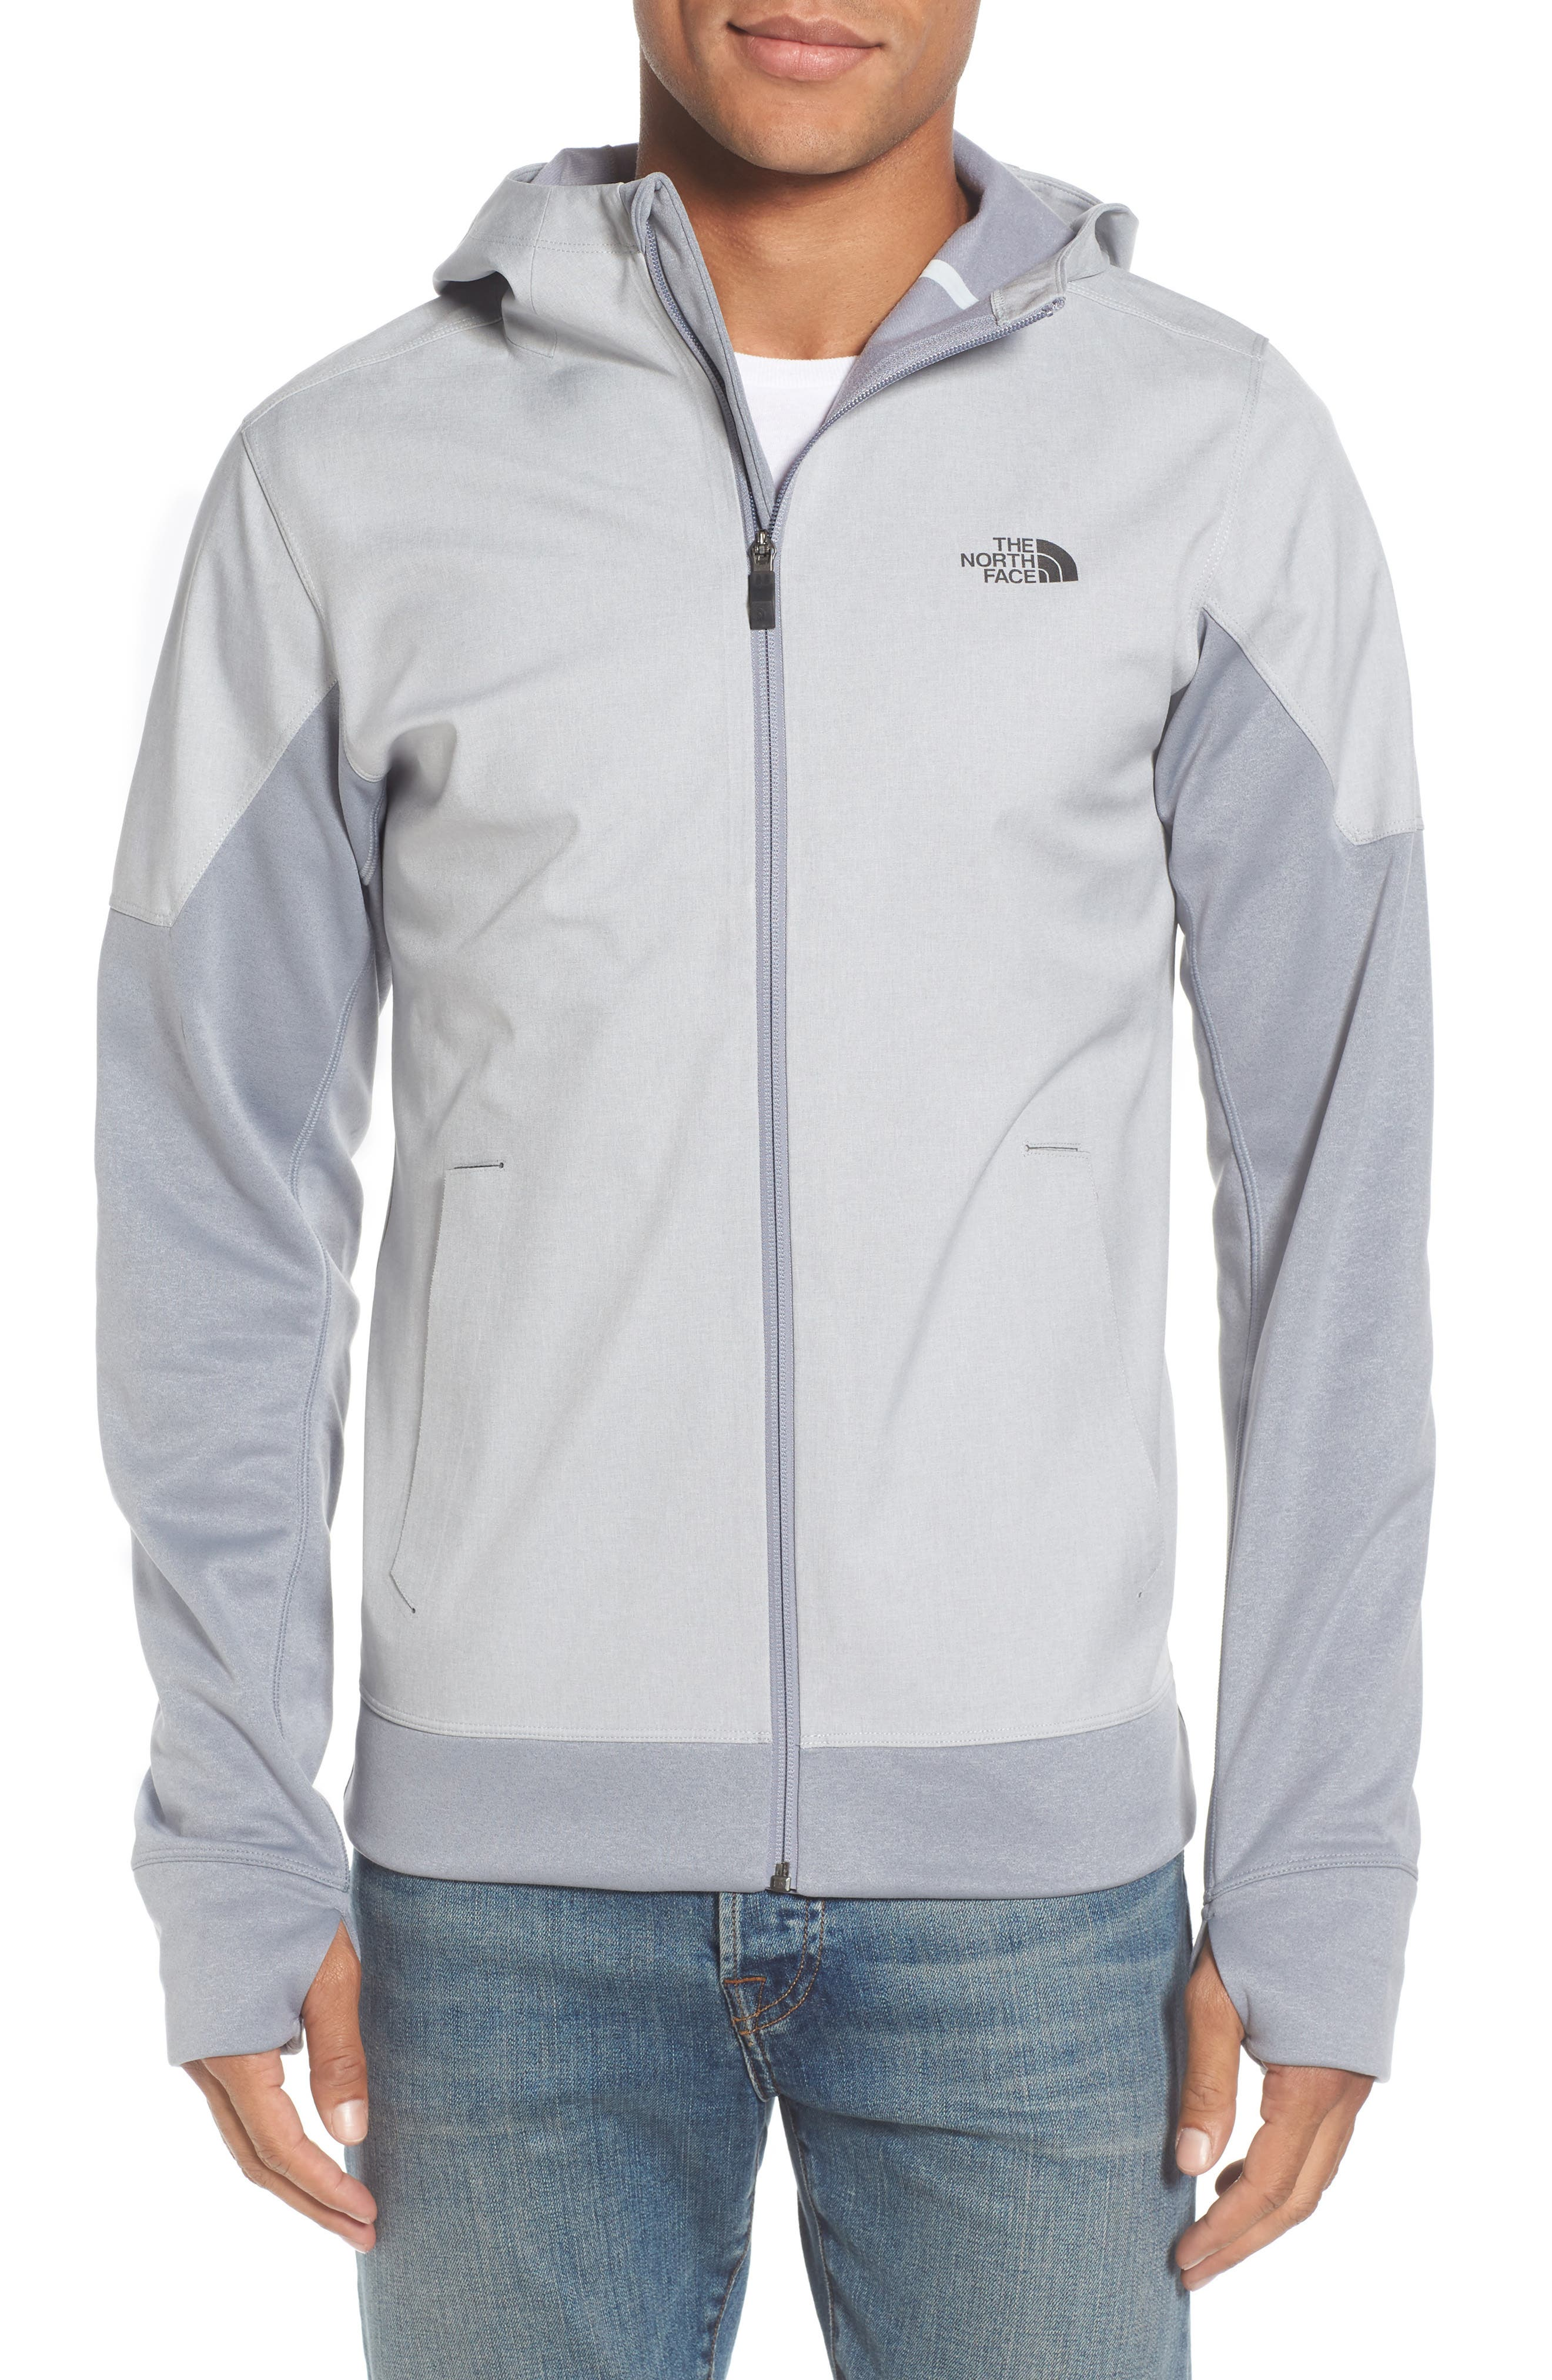 The North Face 'Kilowatt' Hooded Jacket